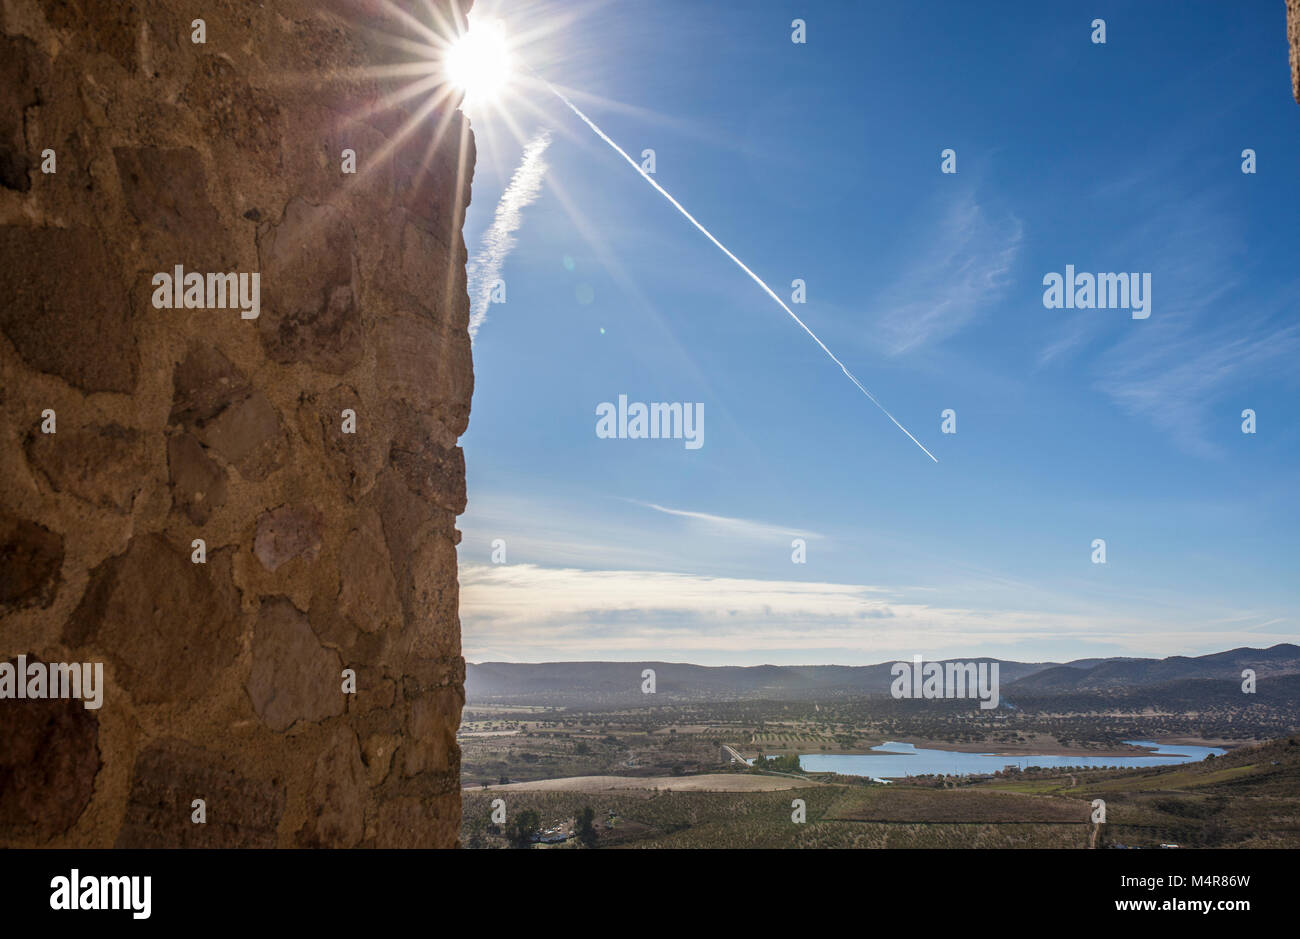 View from Castle of Belmez tower with jet contrail and sunshine, Cordoba, Spain. Situated on the high rocky hill - Stock Image